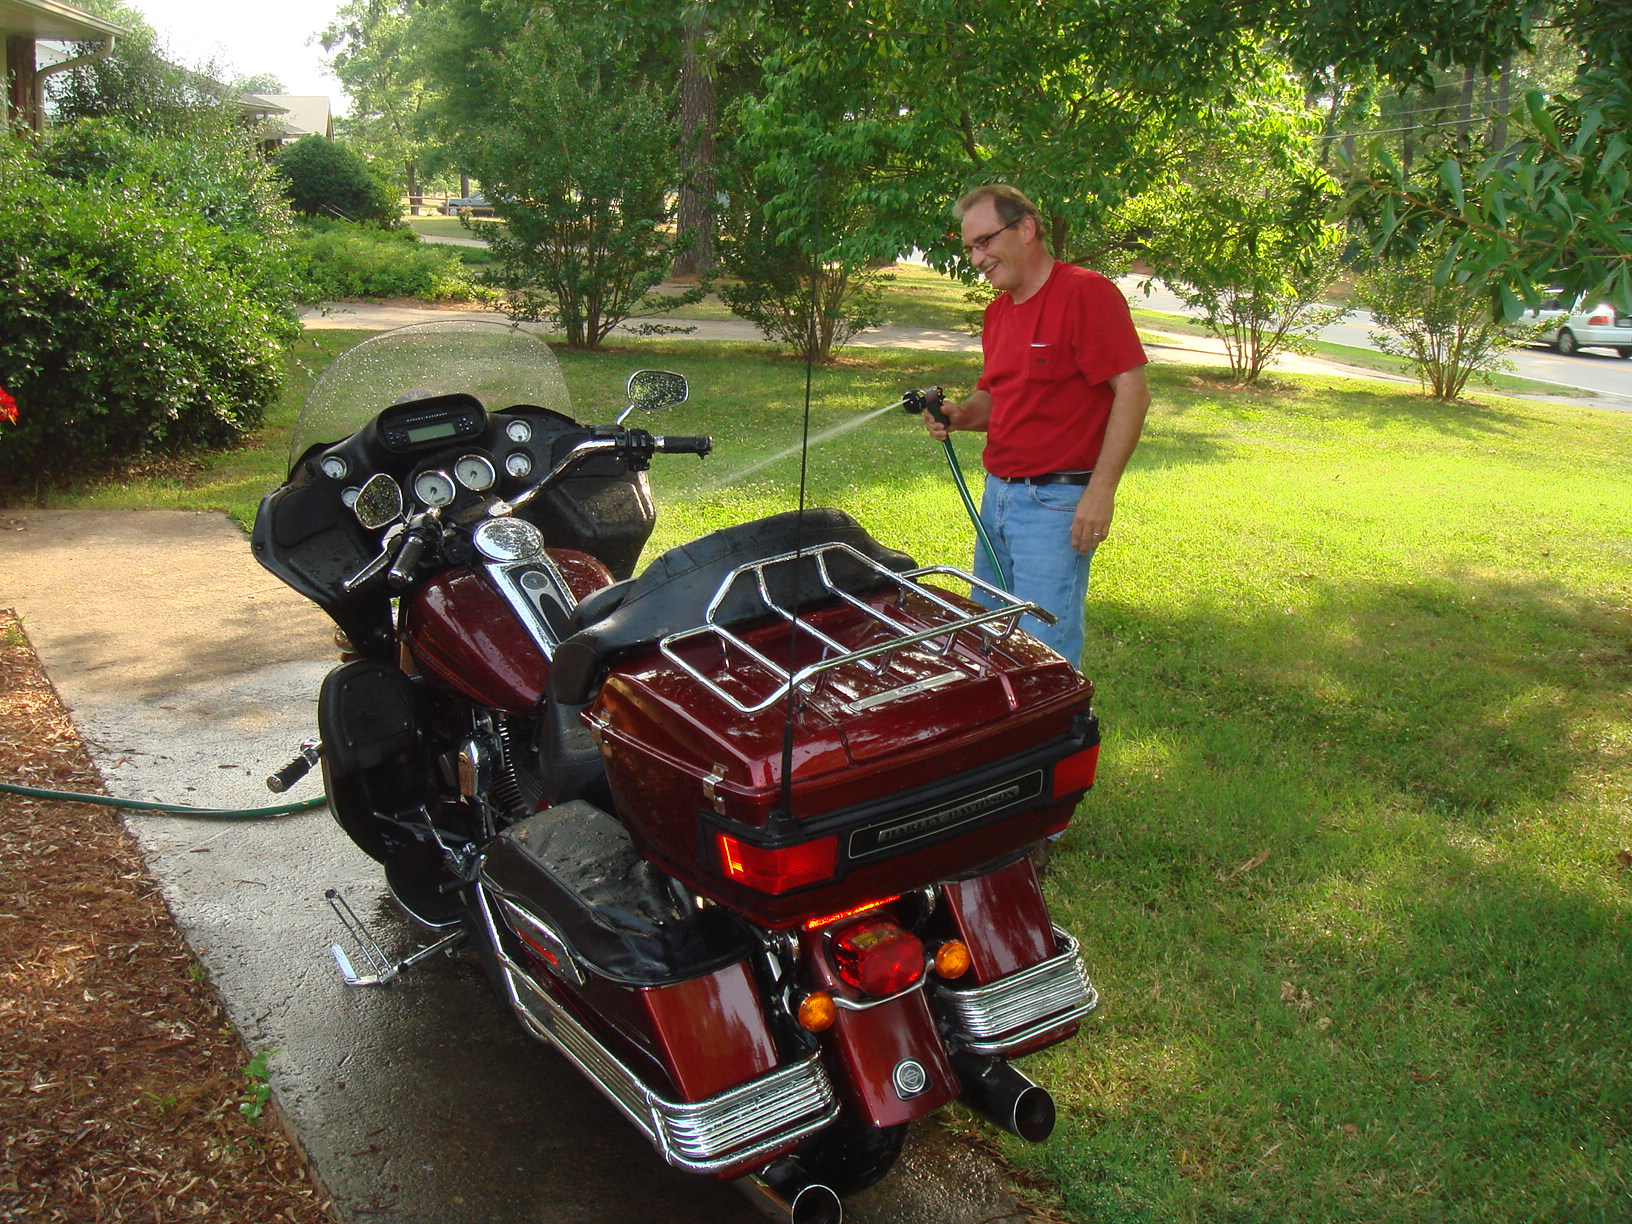 Terrie's husband Bobby washing Joni's bike?